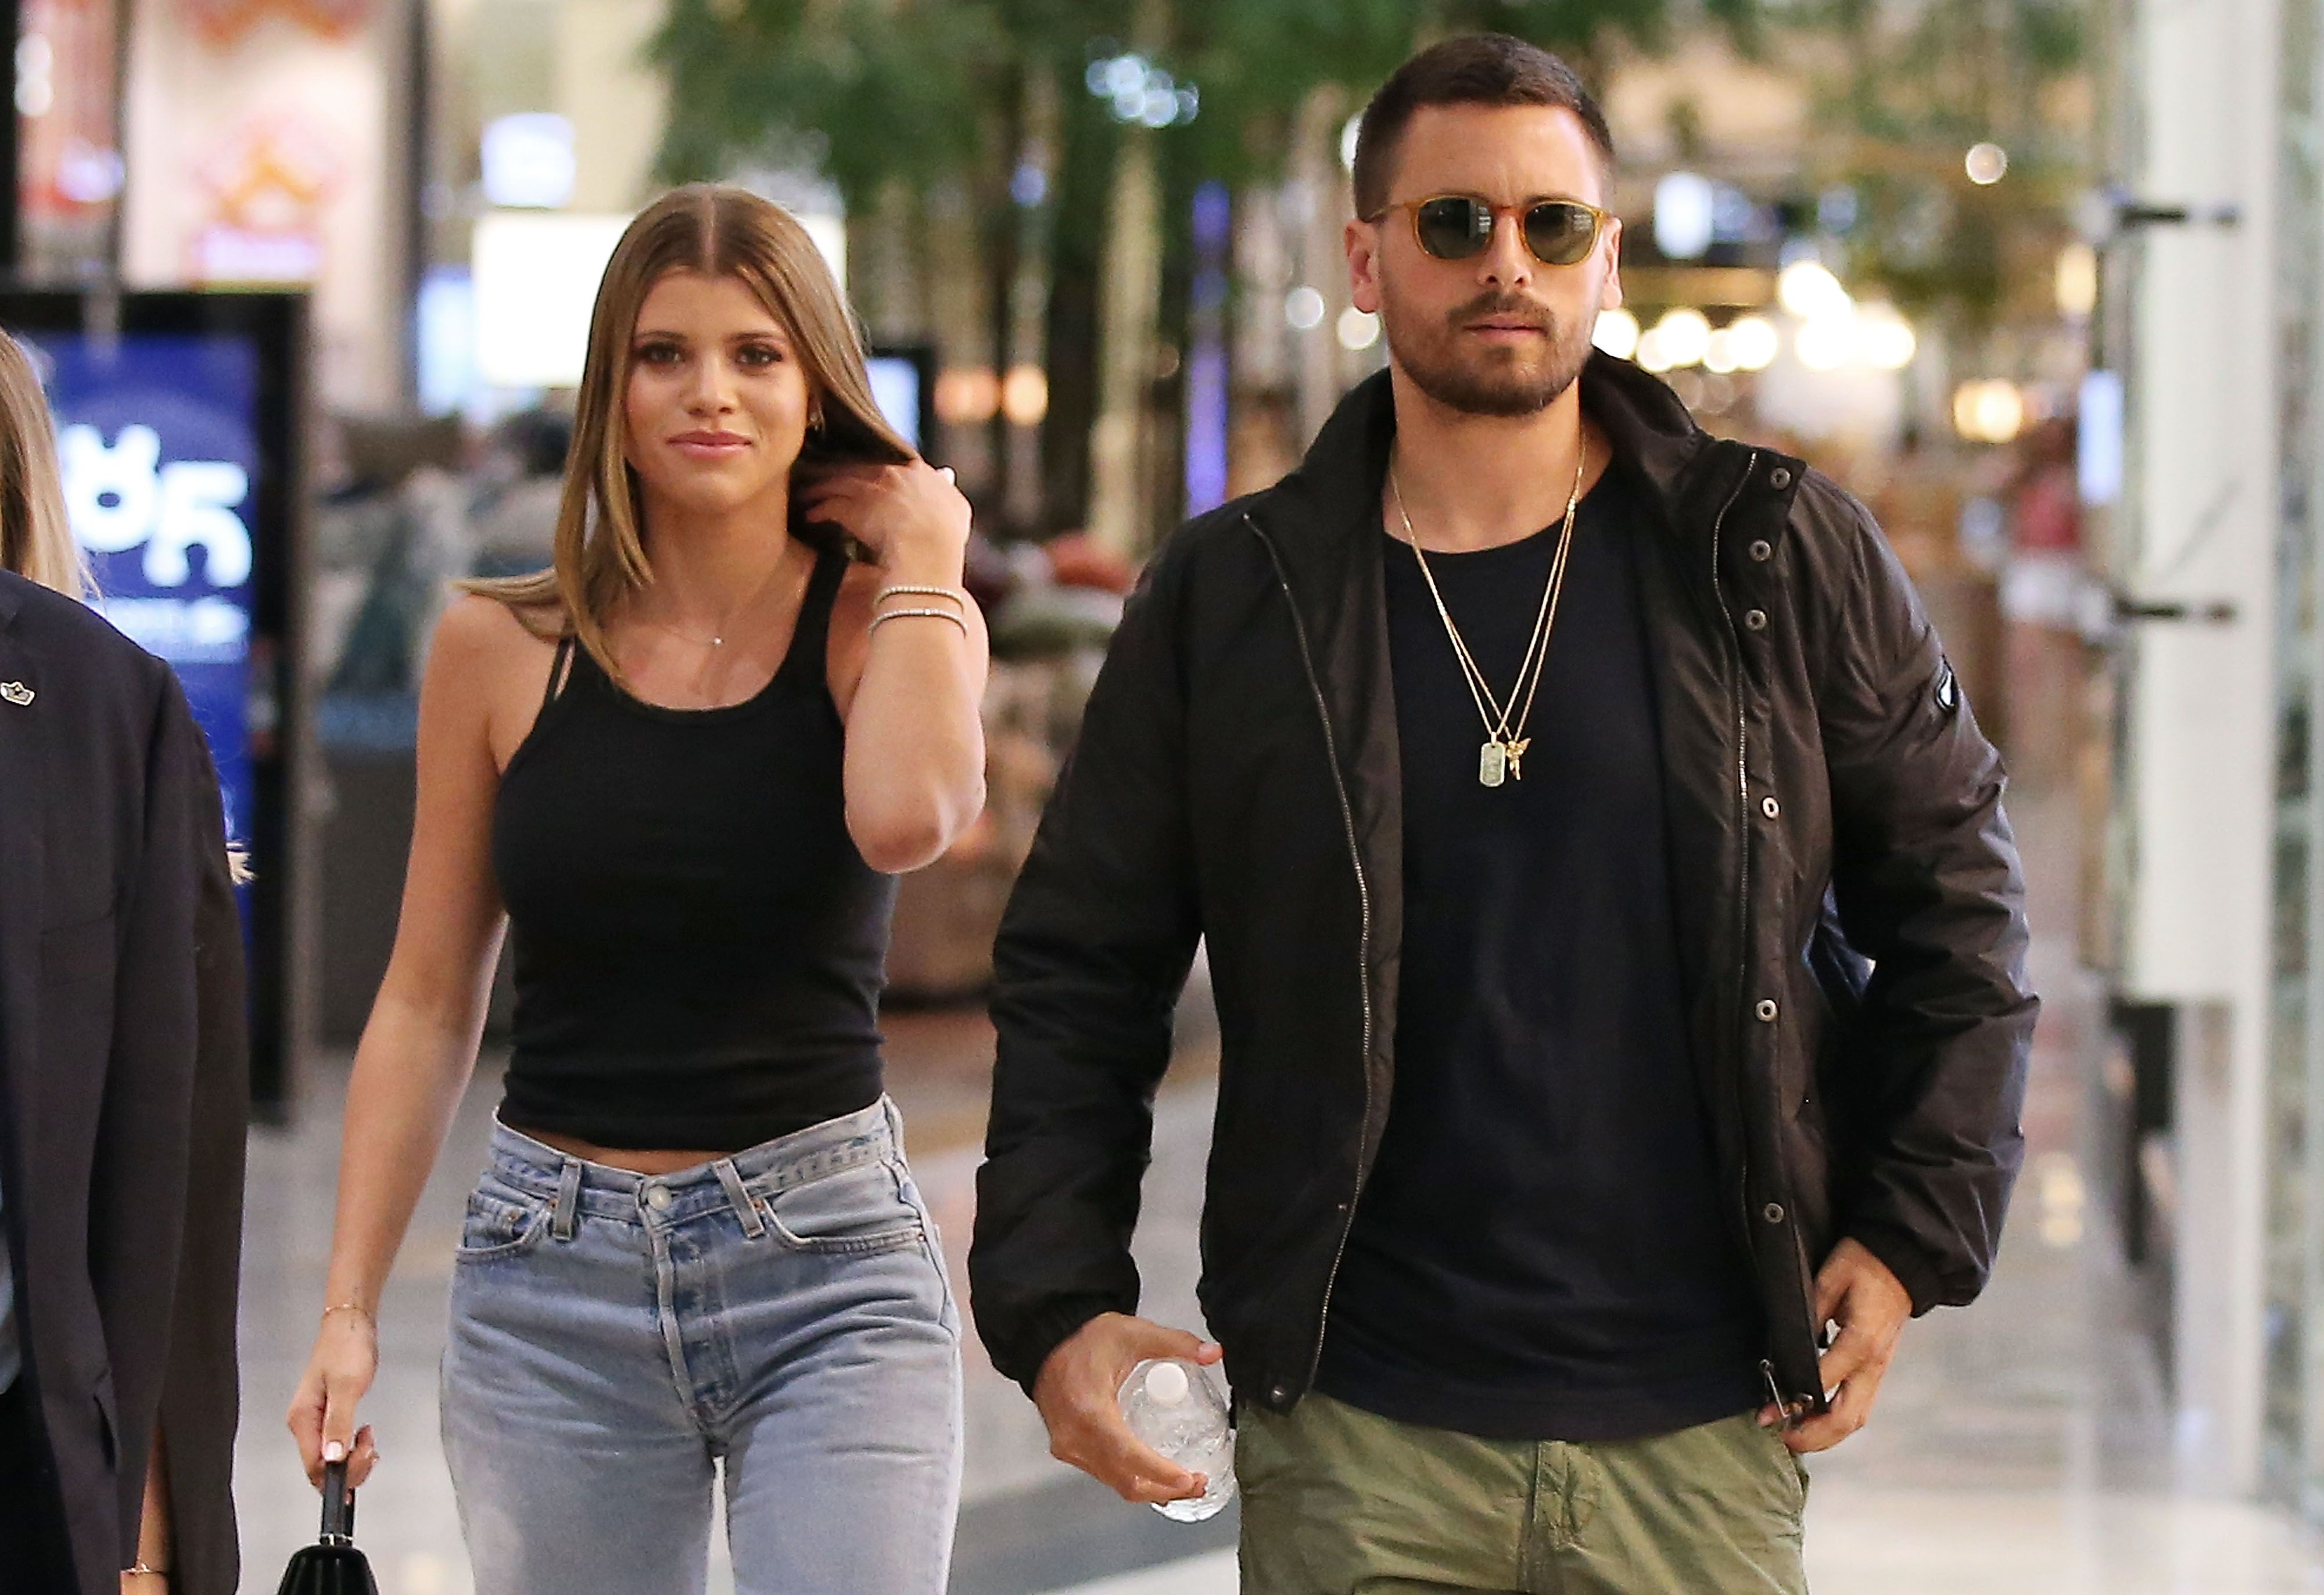 Sofia Richie and Scott Disick walking together.